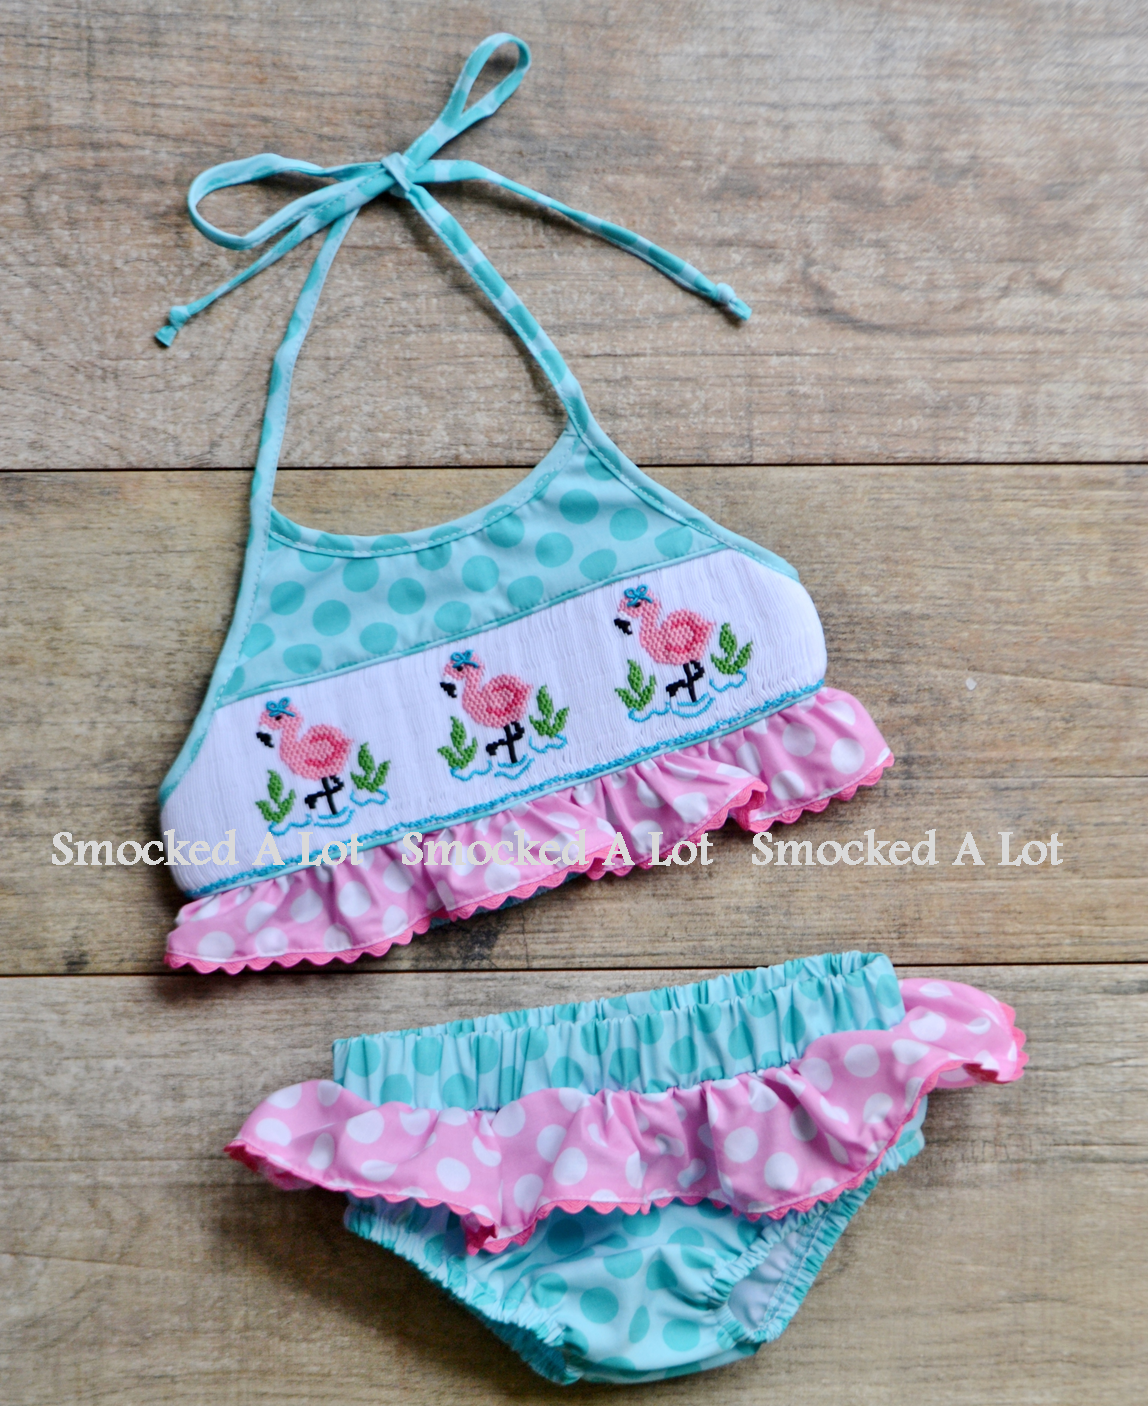 d80b10d232e1f Smocked Girls Flamingo Aqua and Pink Polka Dot Swimsuit Bikini- only $29!  Find this adorable swimsuit and more at www.facebook.com/smockedalot